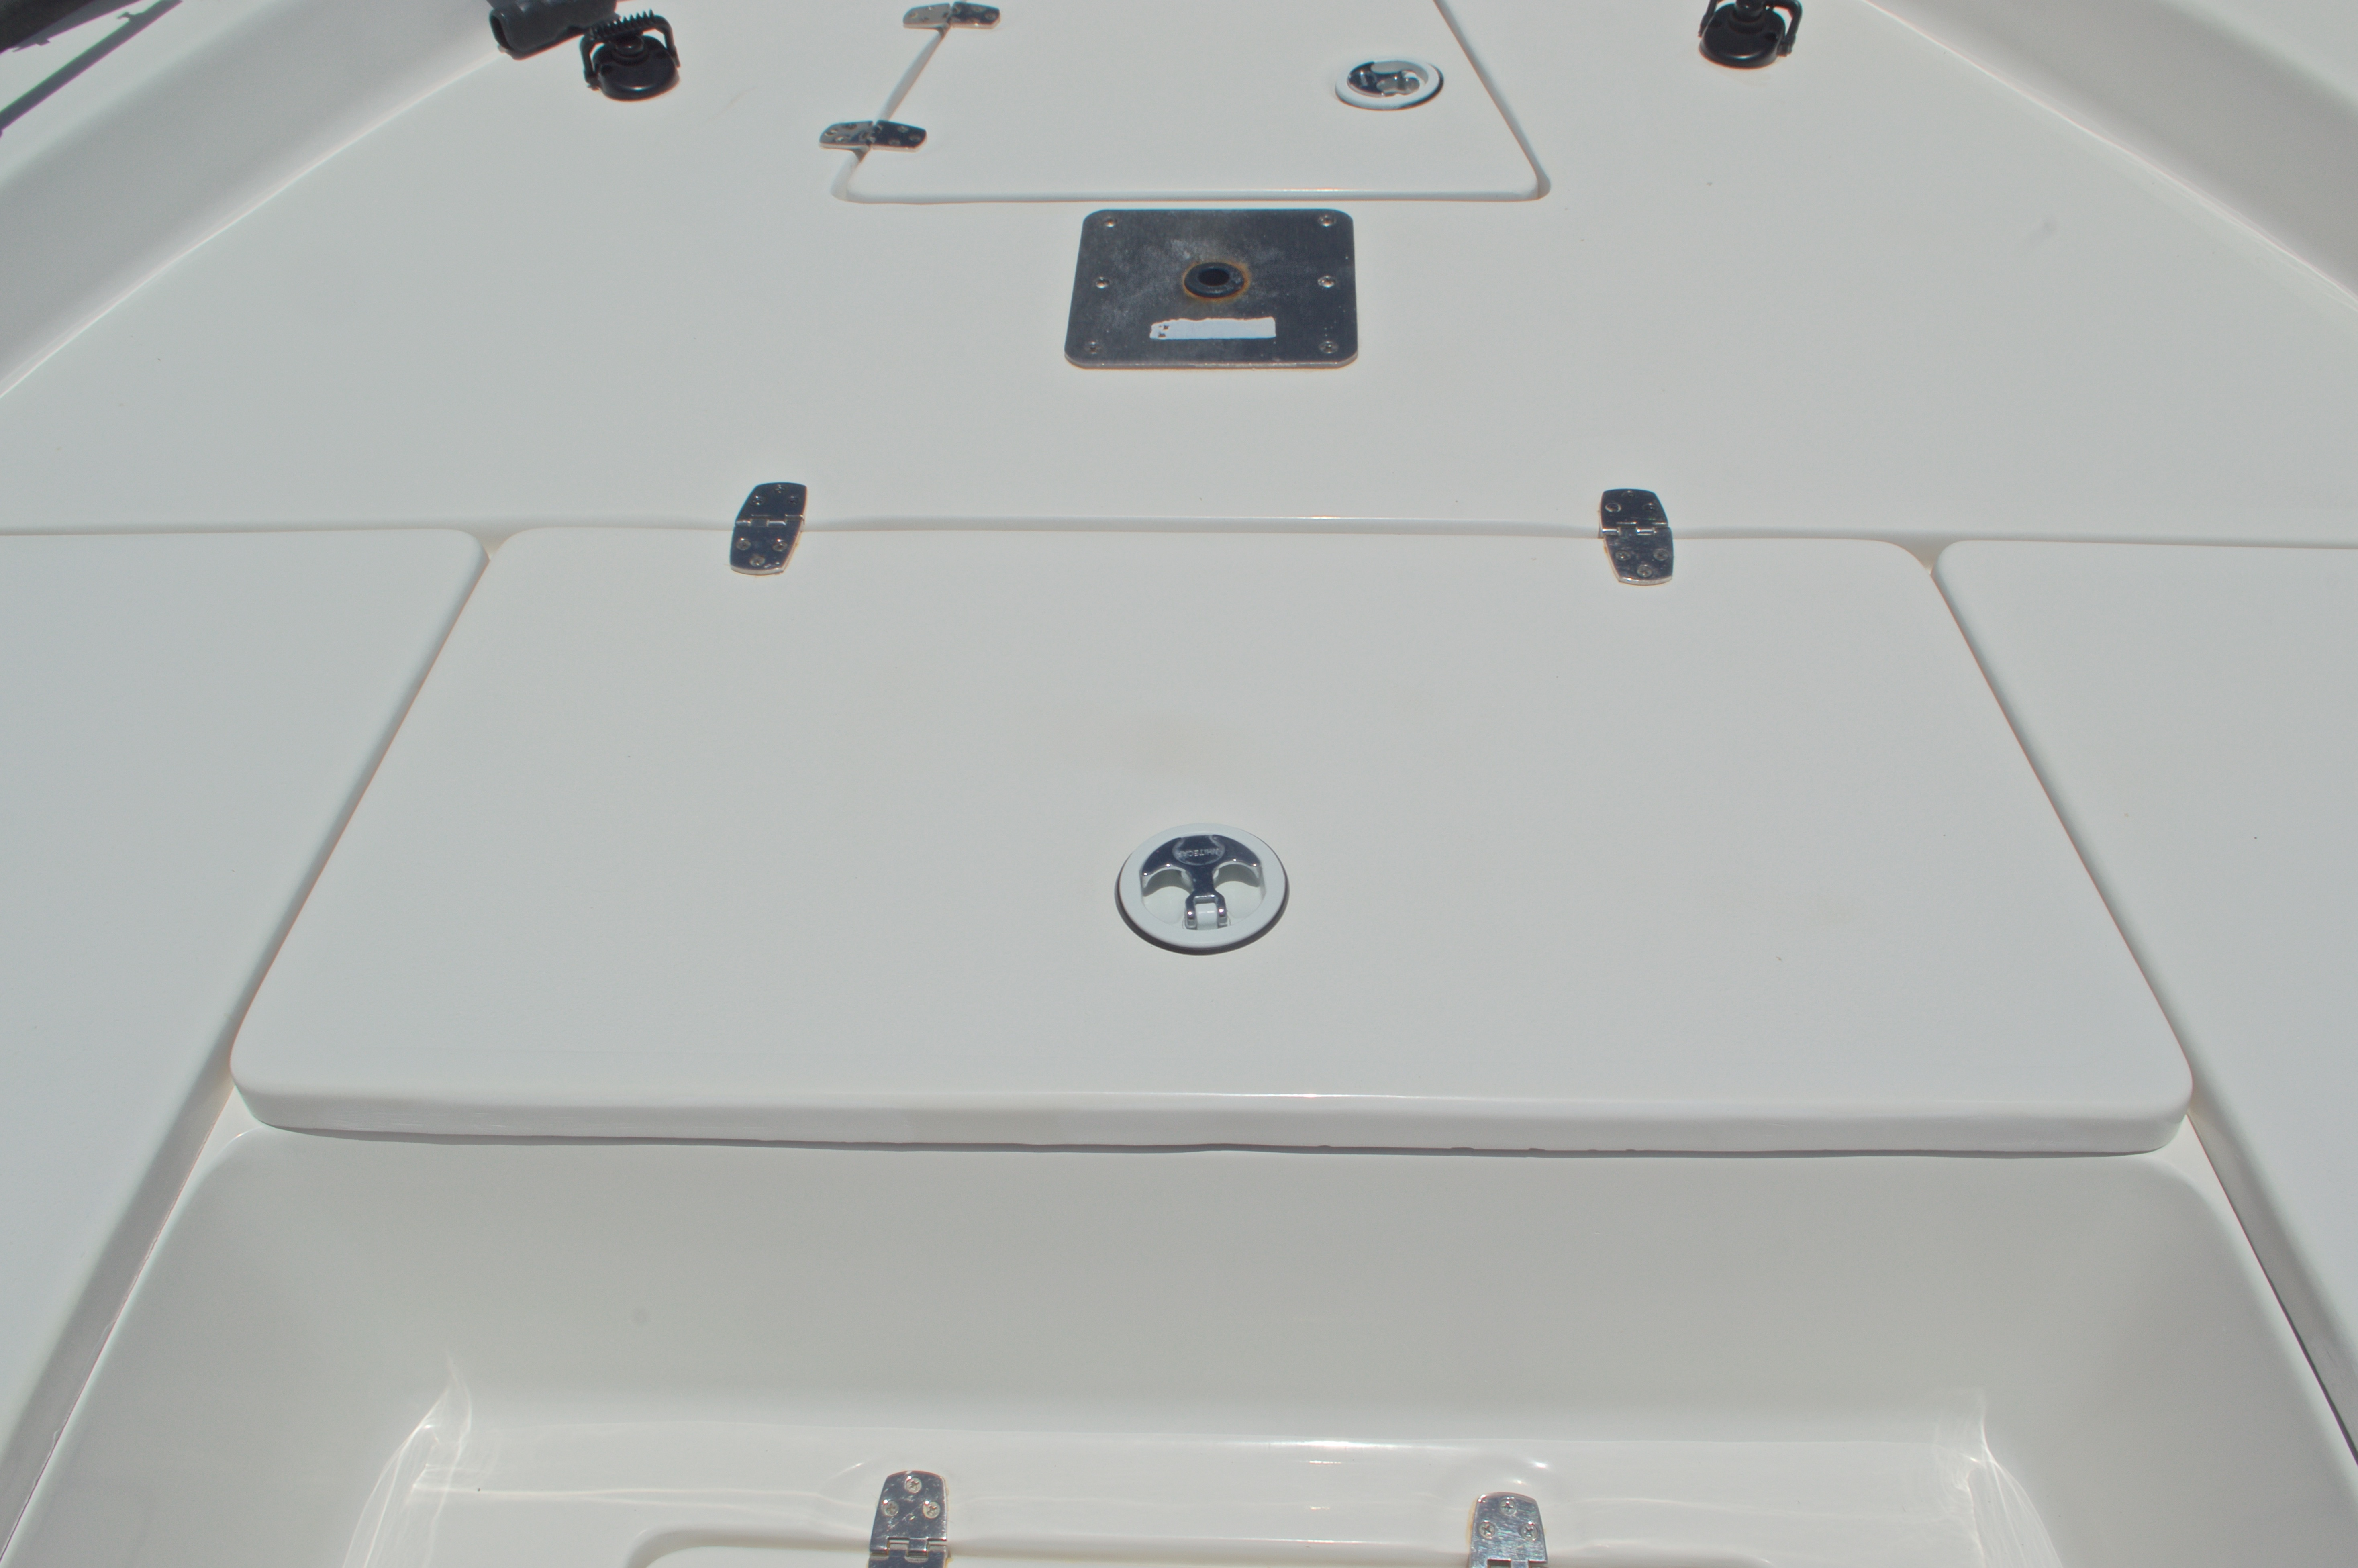 Thumbnail 55 for Used 2005 Sea Chaser 245 Bay Runner LX boat for sale in West Palm Beach, FL